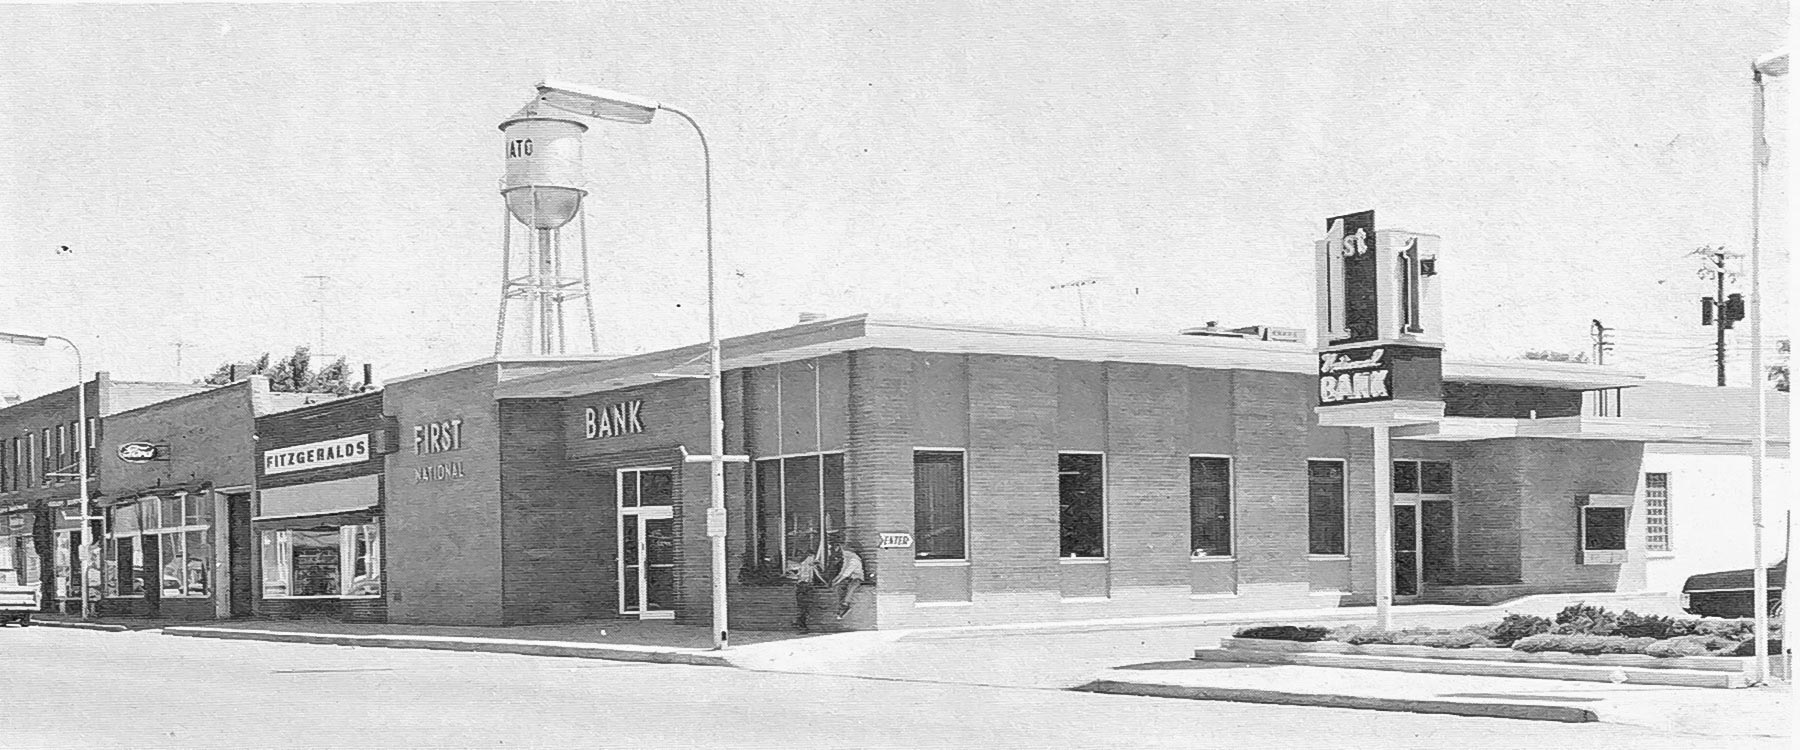 Picture of First National Bank on Broadway Avenue, 1970.